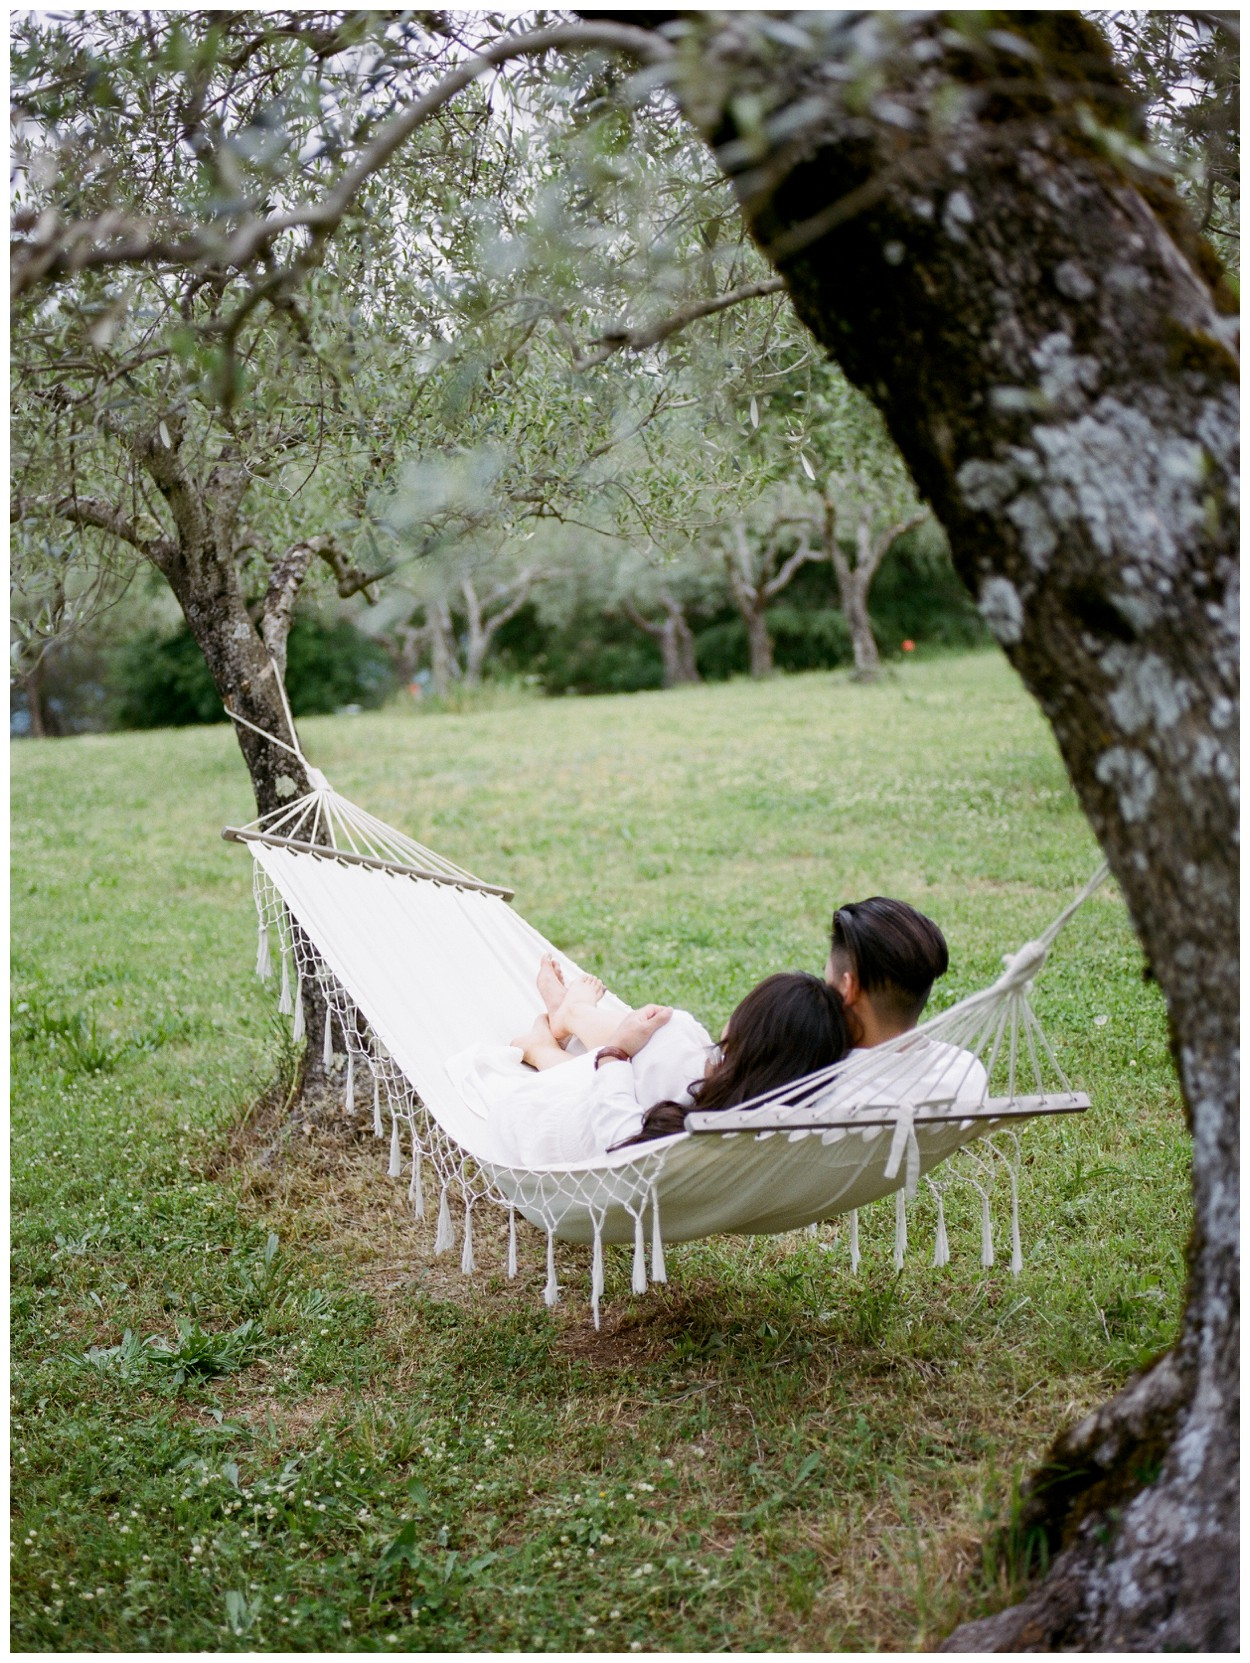 Spring Engagement at Villa Montanare in Cortona Tuscany, Italy by fine art wedding photographer Lissa Ryan Photography couple in hammock in an olive grove